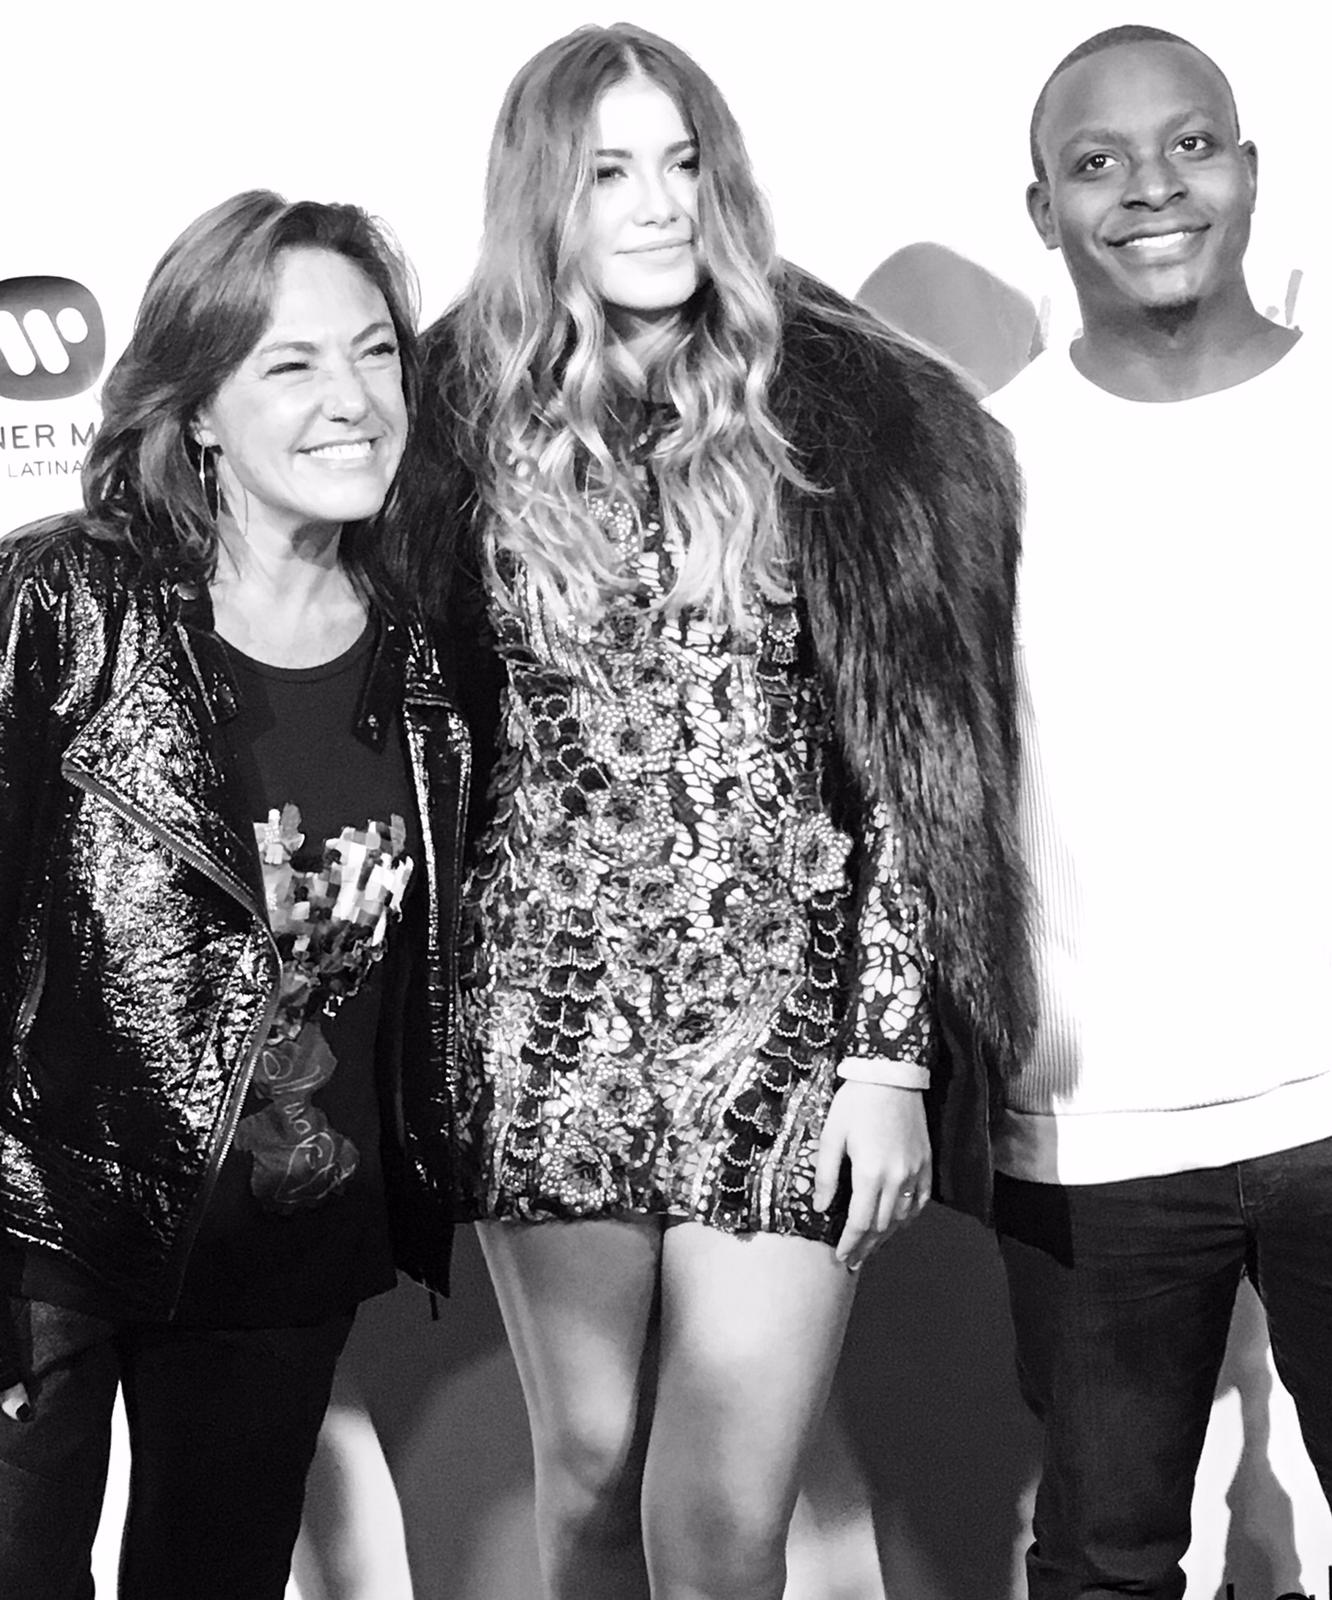 Claudia Brant, Sofia Reyes, Neff-u at Sofia's record release party Sofitel